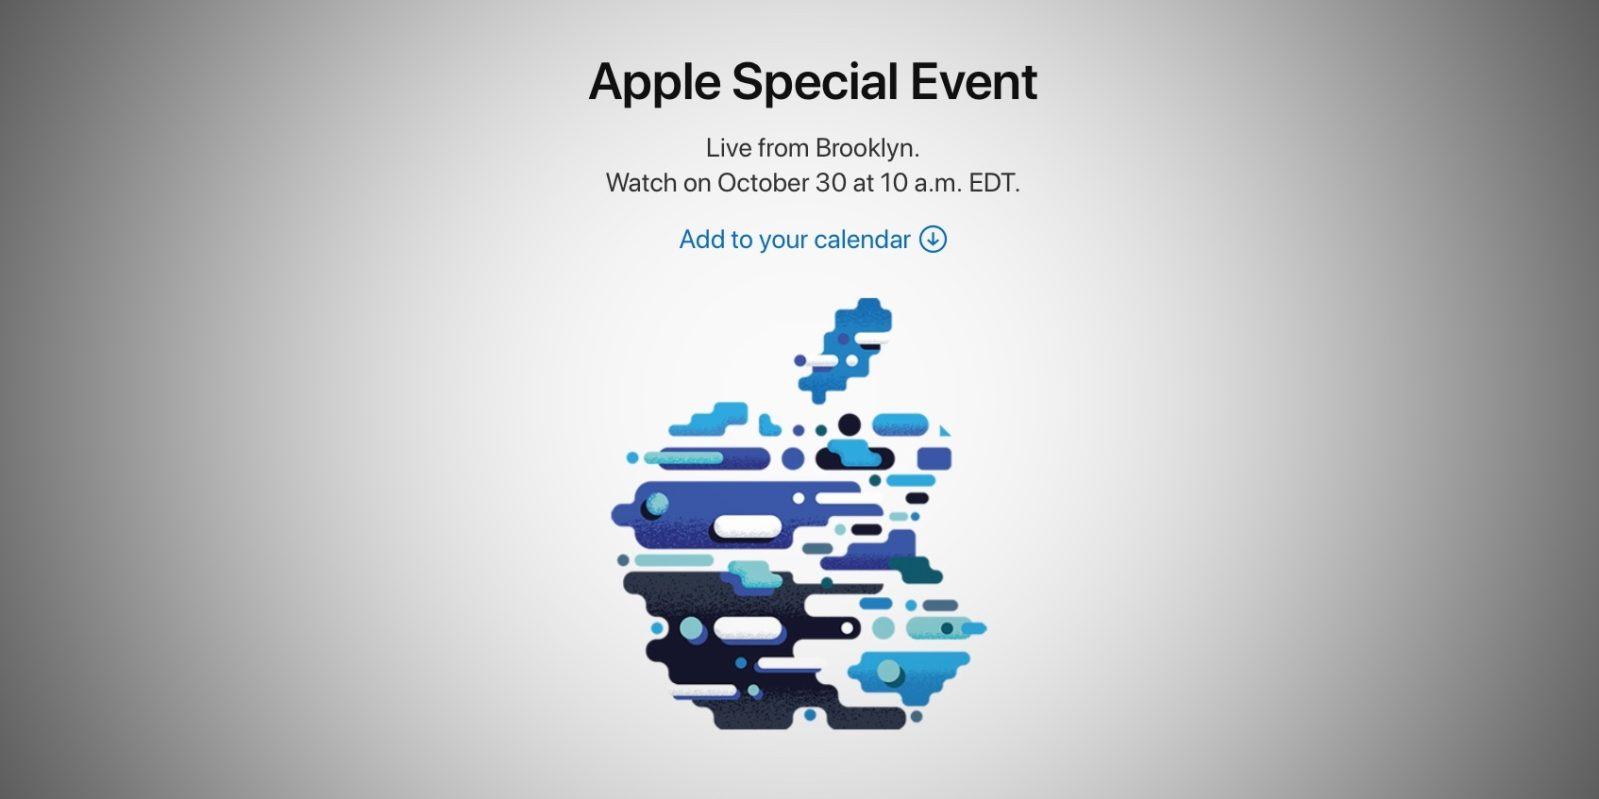 Apple event livestream: How to watch on iPhone, Mac, more